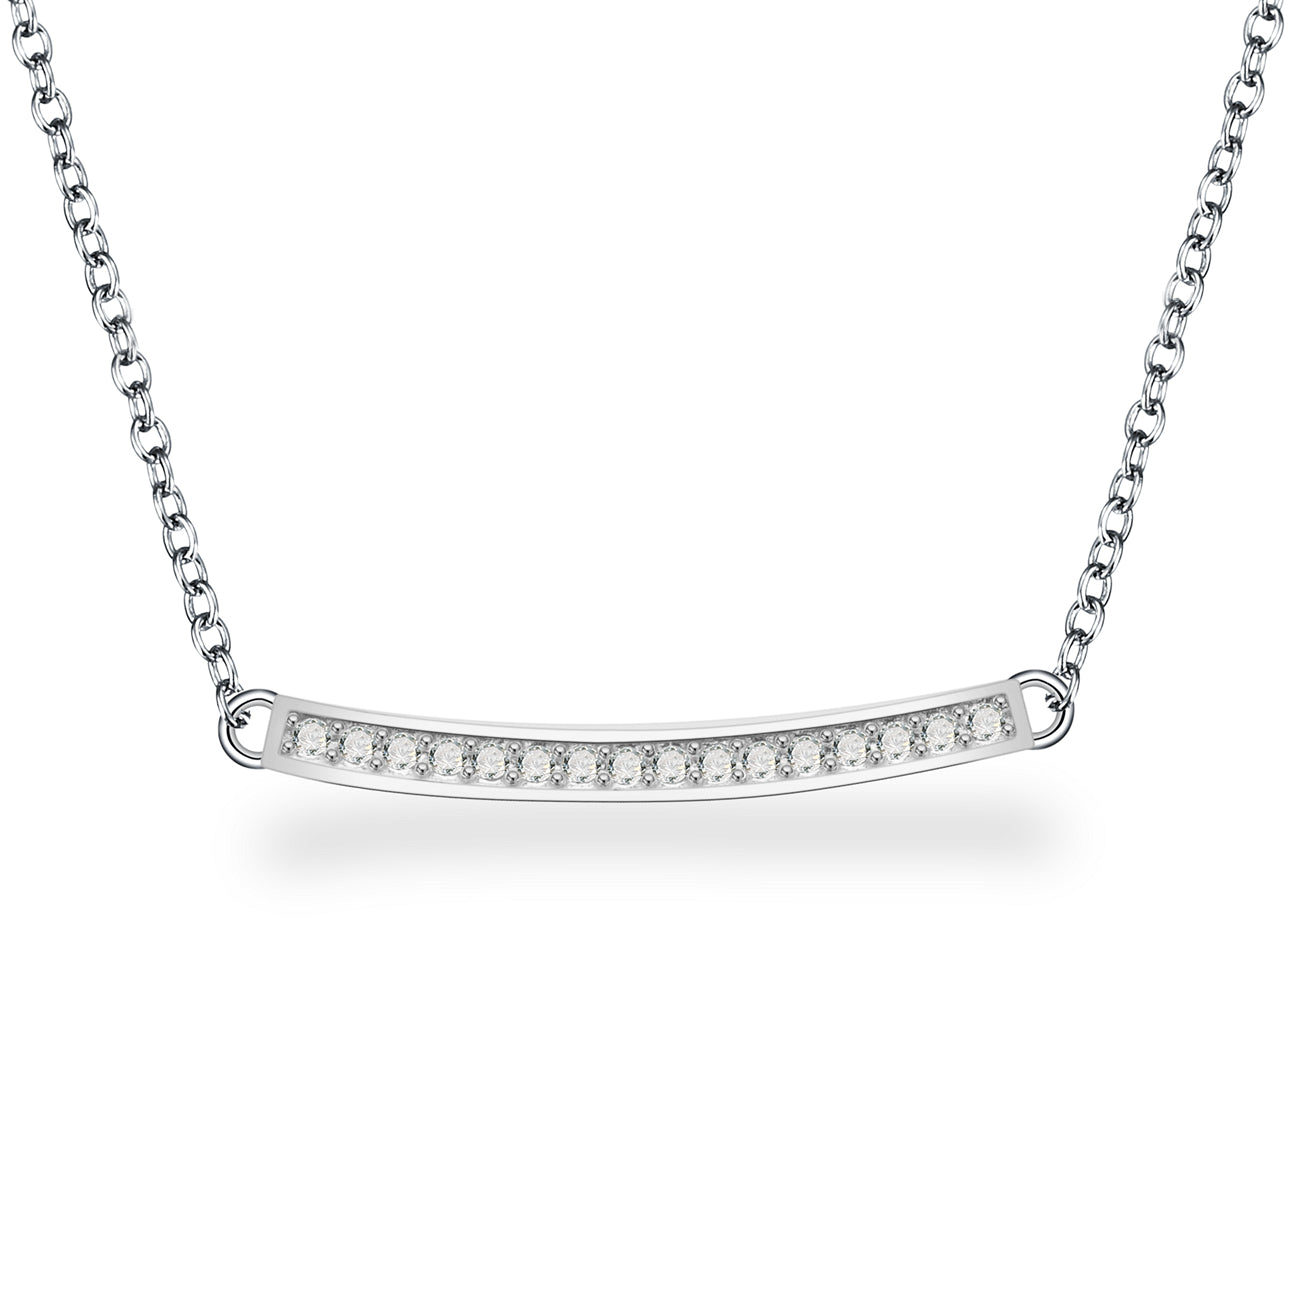 AMANDA STERLING SILVER NECKLACE